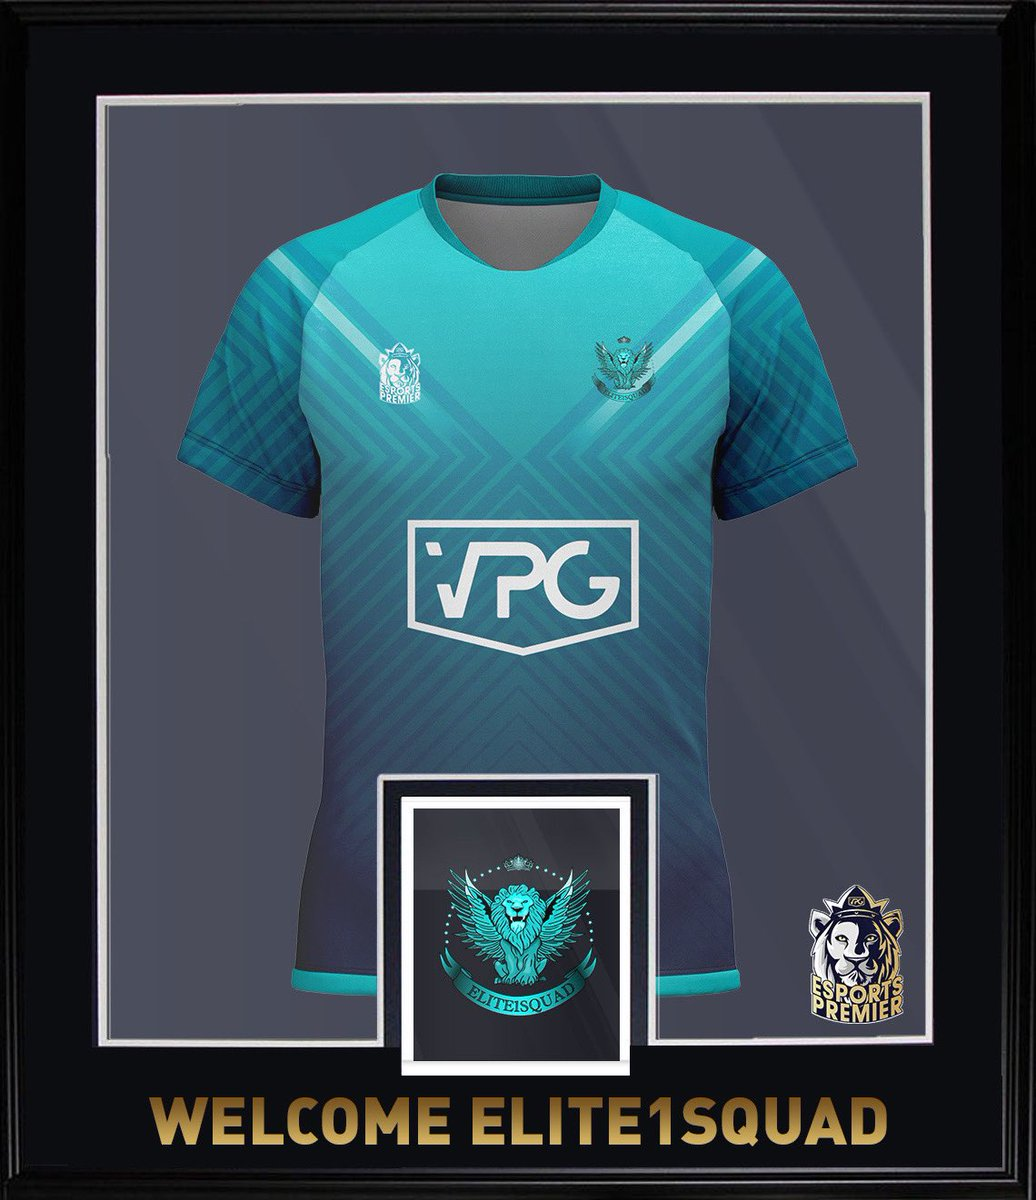 🤩 Welcome @Elite1squad into the @VPGPremier !   🌍 Nationality: 🇩🇪   🏆 Competed in the Premier South tier last season, jumped for the opportunity in the Esports Premier. The 🦁's will be ready to show what they are made of.   #Elite1 #FIFA21 #ProClubs #VPG https://t.co/qZUNgZpLnn